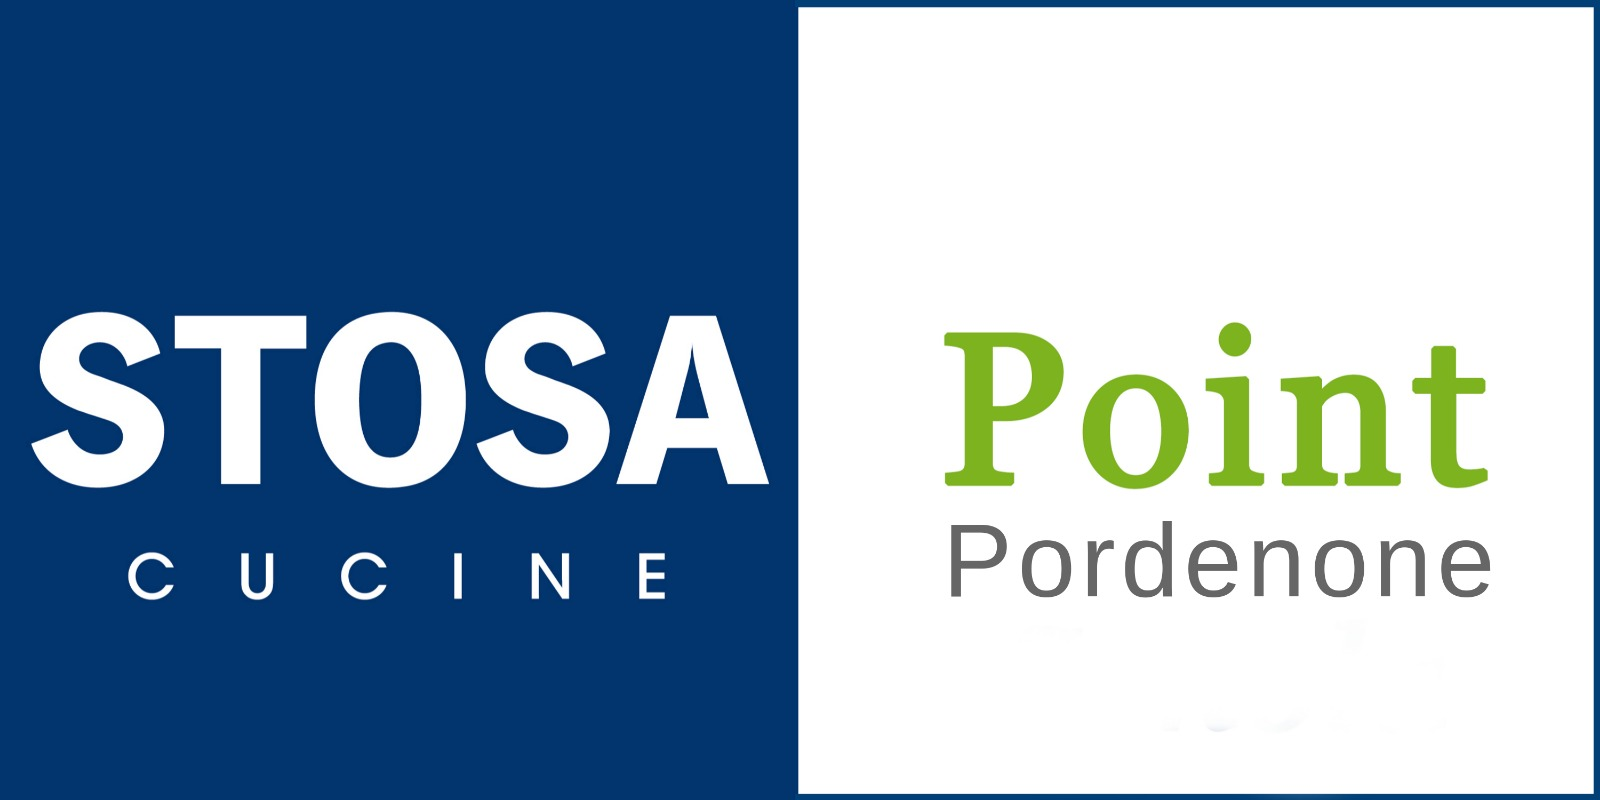 Stosa Point Pordenone